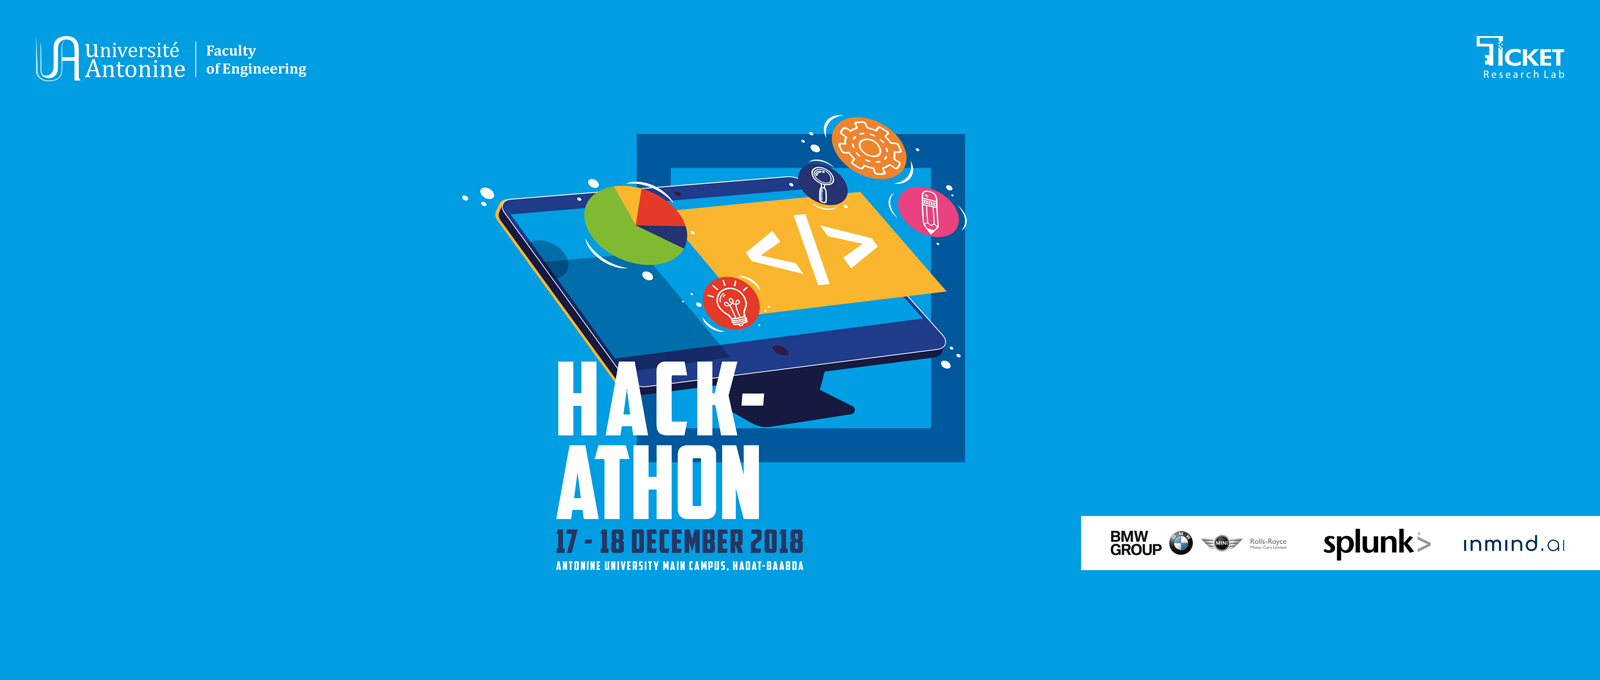 Hackathon at Antonine University